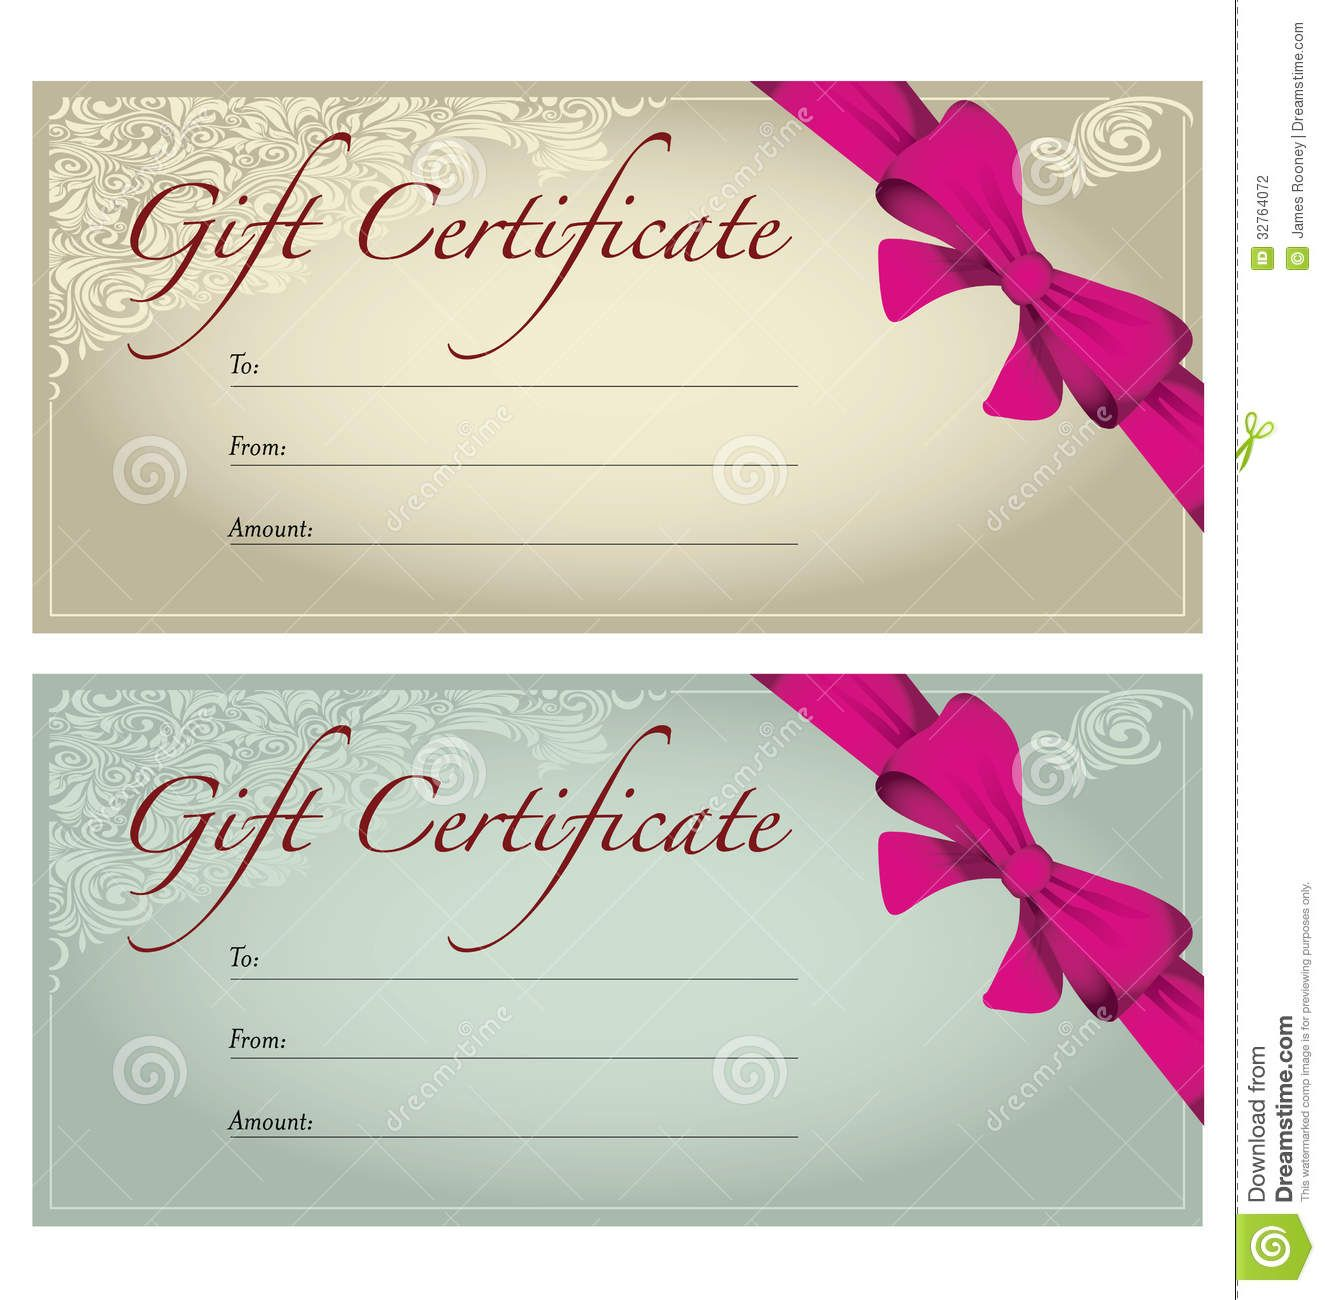 Gift certificate voucher template sample format home design idea gift certificate voucher template sample format yelopaper Images